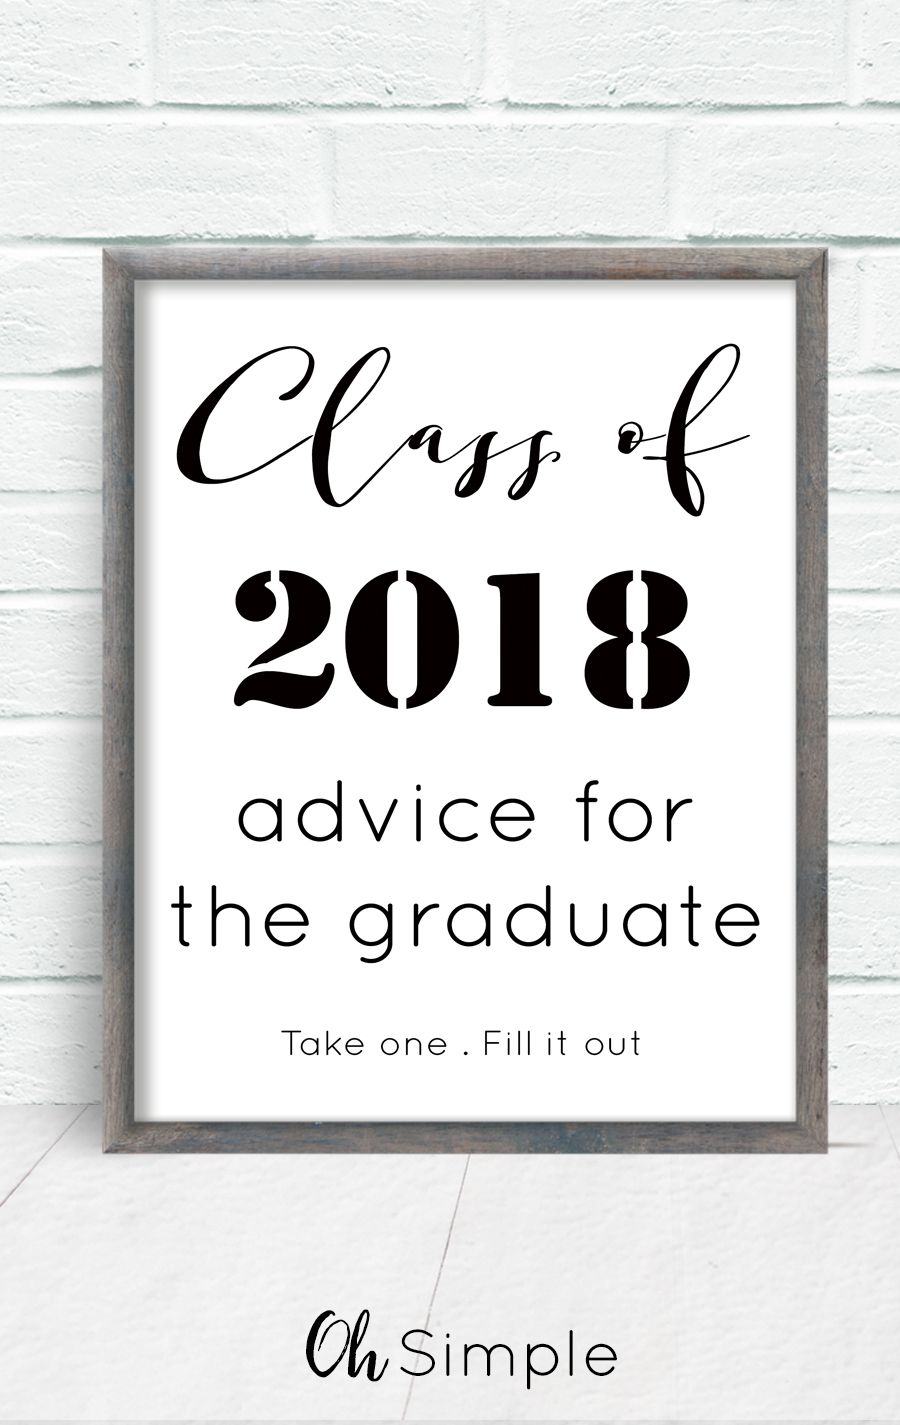 Free Printable With All Graduation Invitations Advice For The Graduate Perfect Addition To Any Party Have Each Guest Complete An